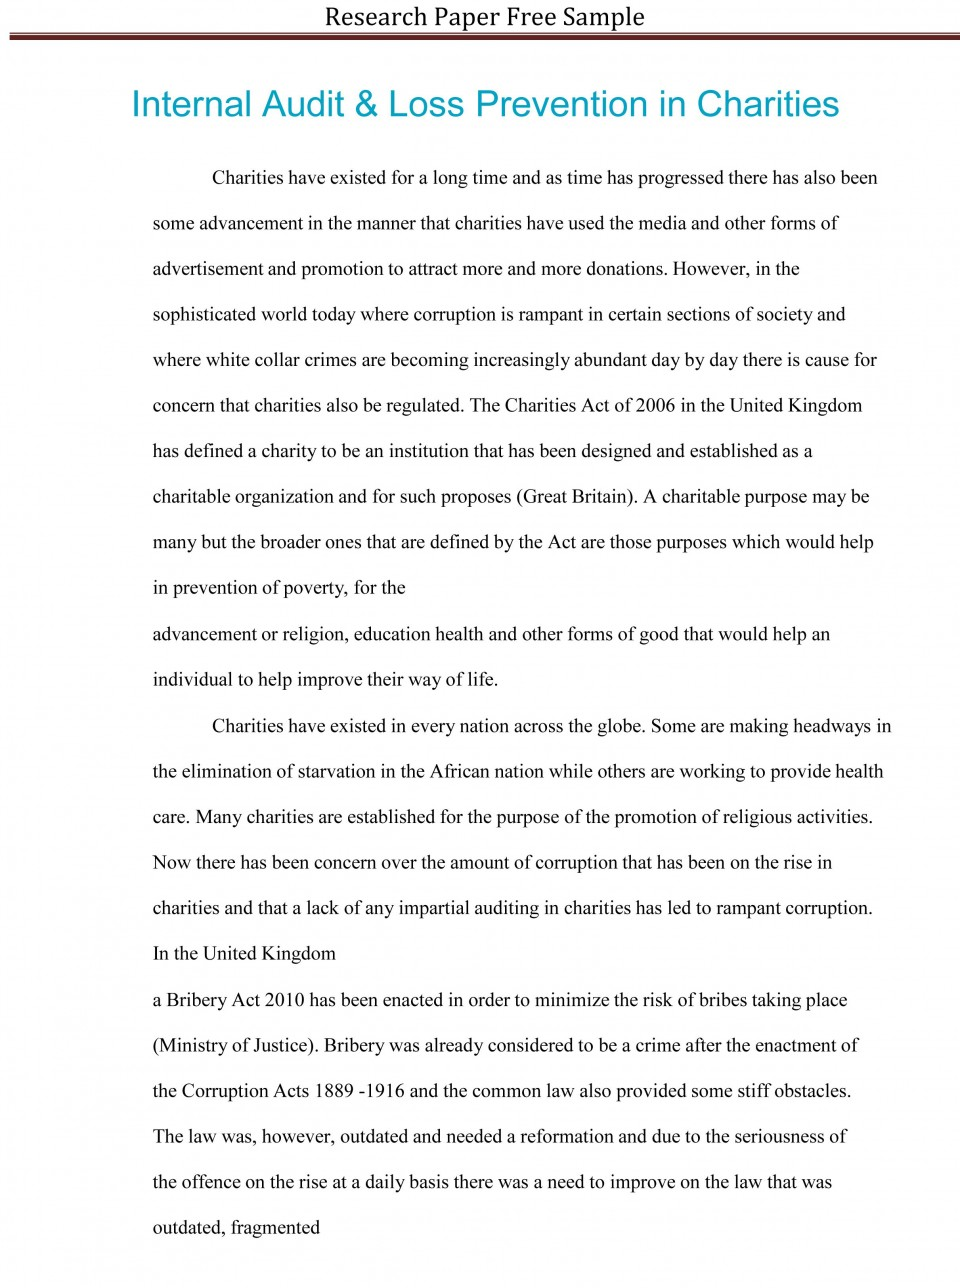 003 Research Paper Frightening Example Purdue Owl Outline Apa 960